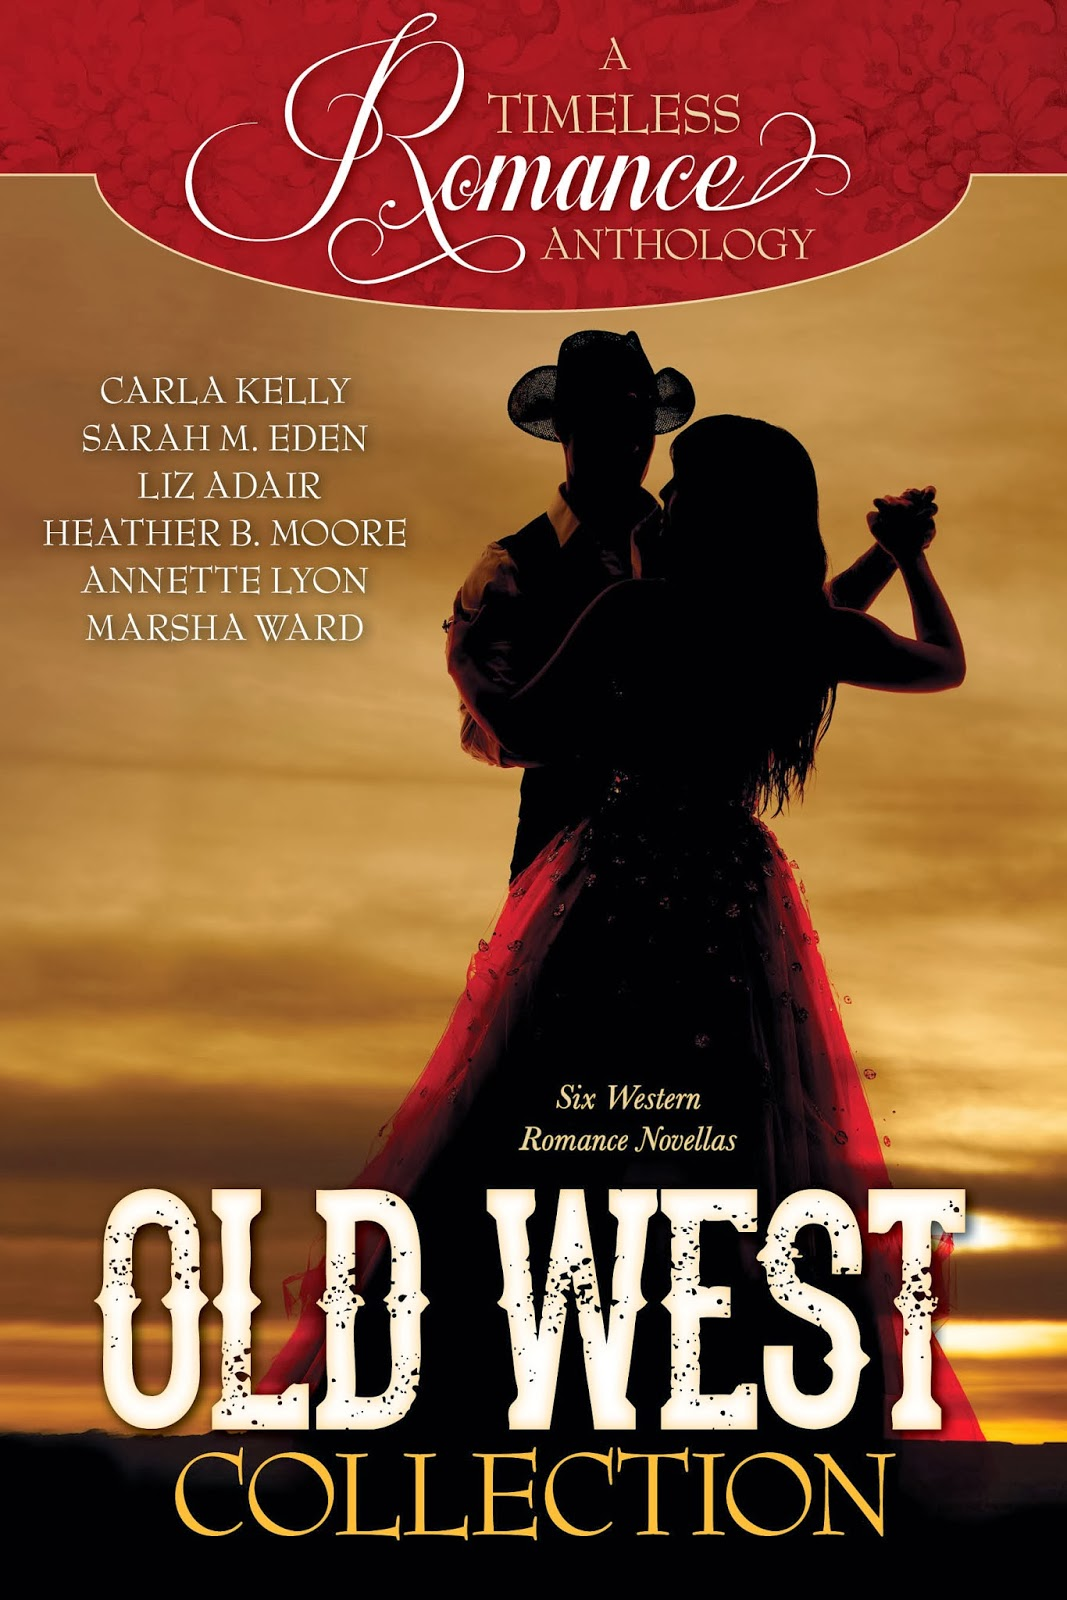 Old West Collection is a best seller!